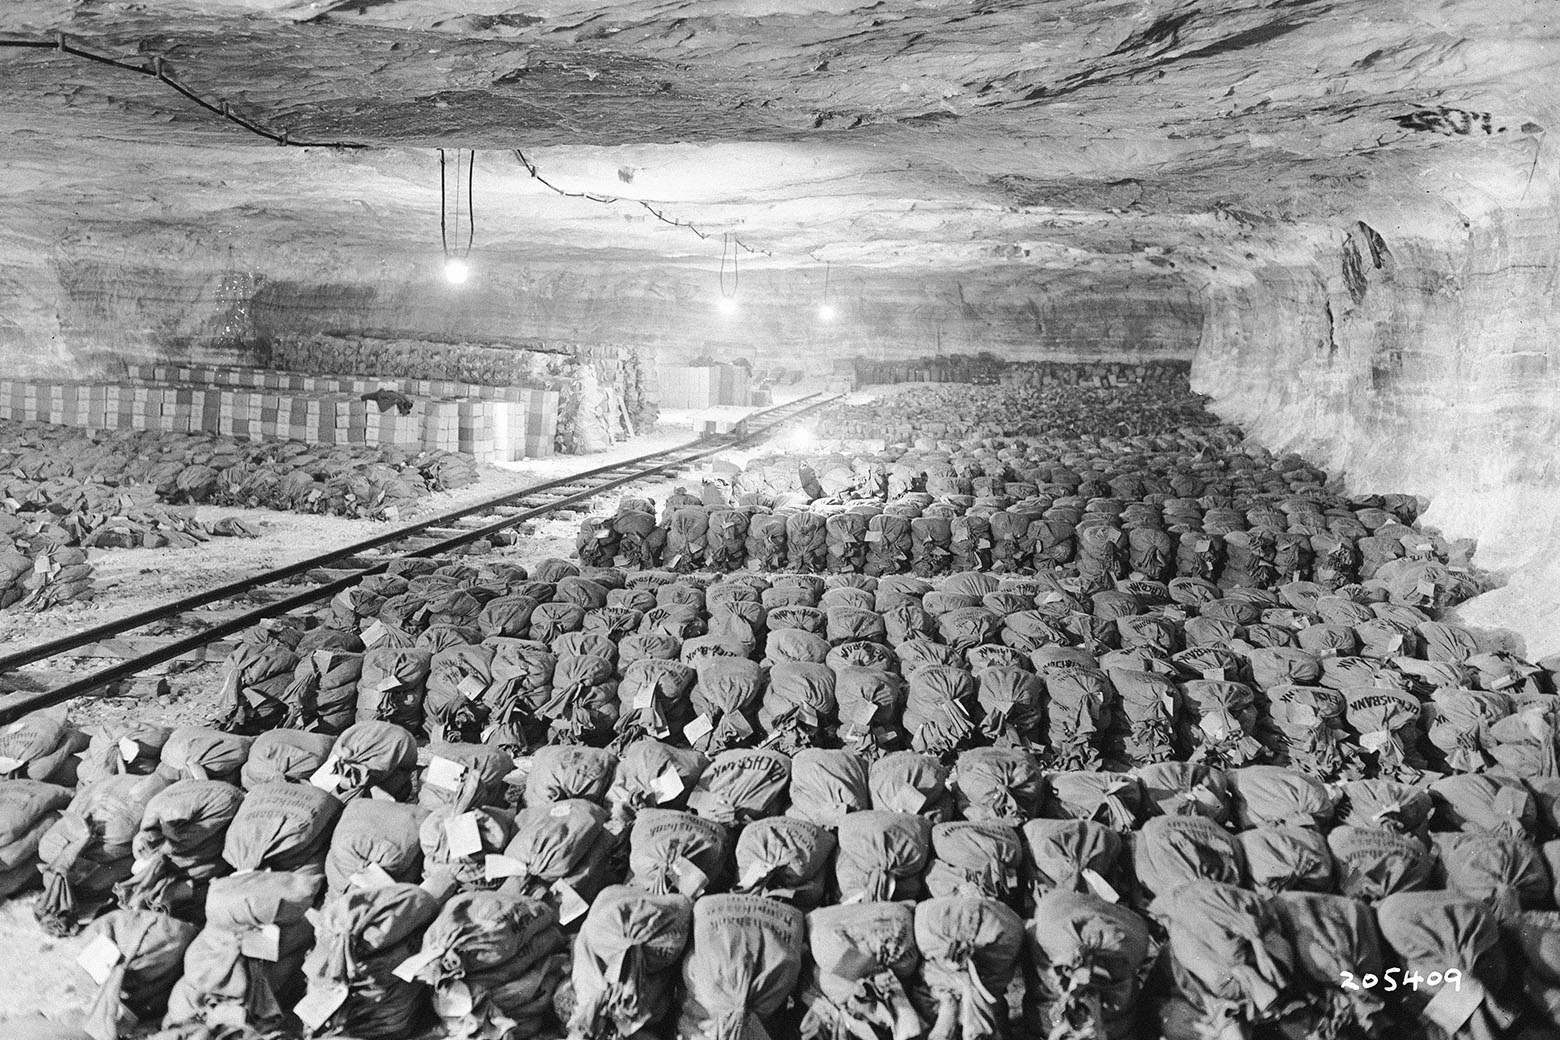 Capture of Germany's Gold Reichsbank wealth, SS loot, and Berlin Museum paintings that were removed from Berlin to a salt mine vault located in Merkers, Germany, 1945.